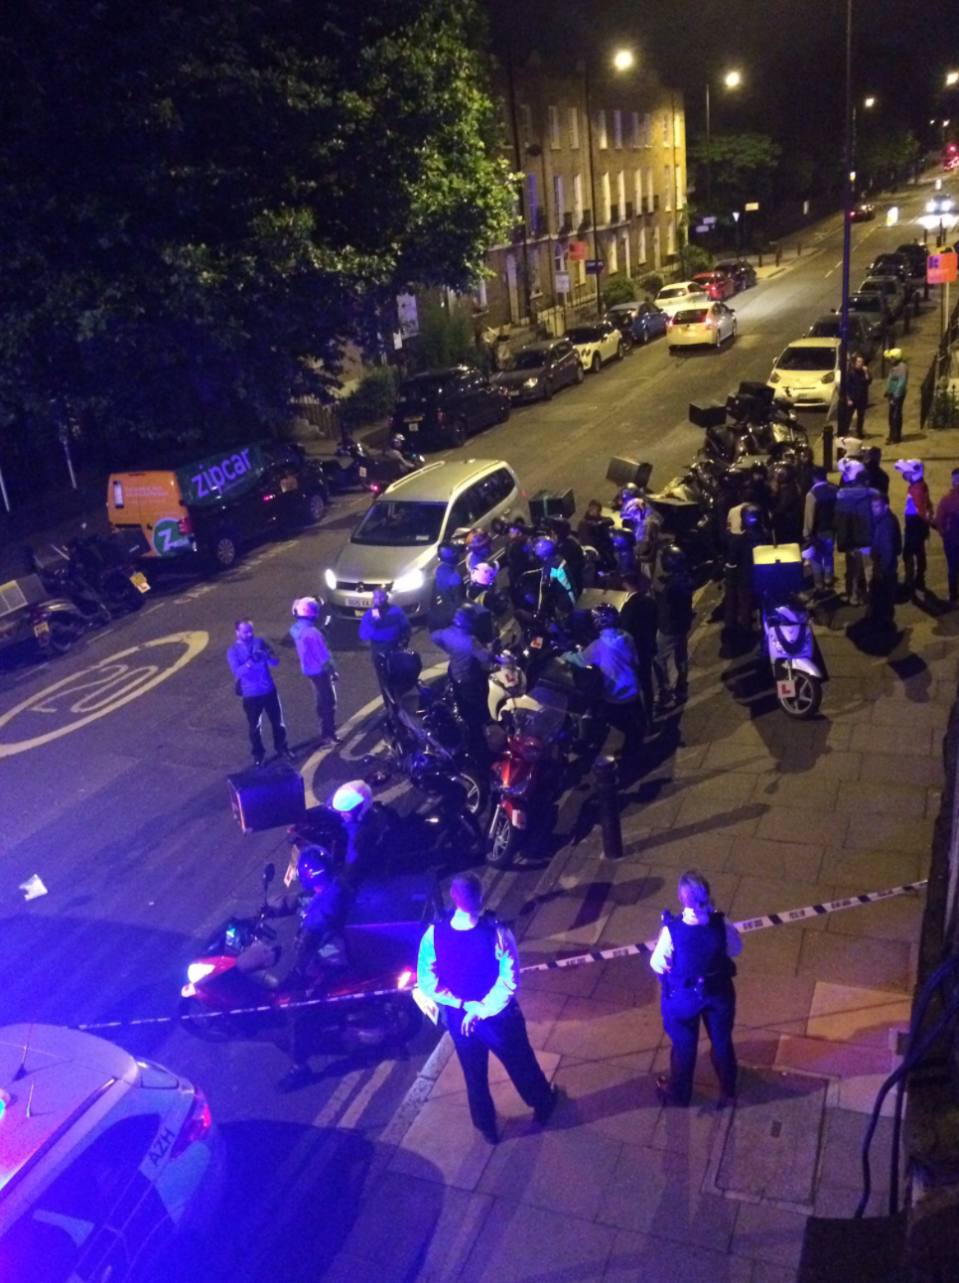 Police and ambulances attend the scene of an attack in Hackney (Sarah Cobbold)